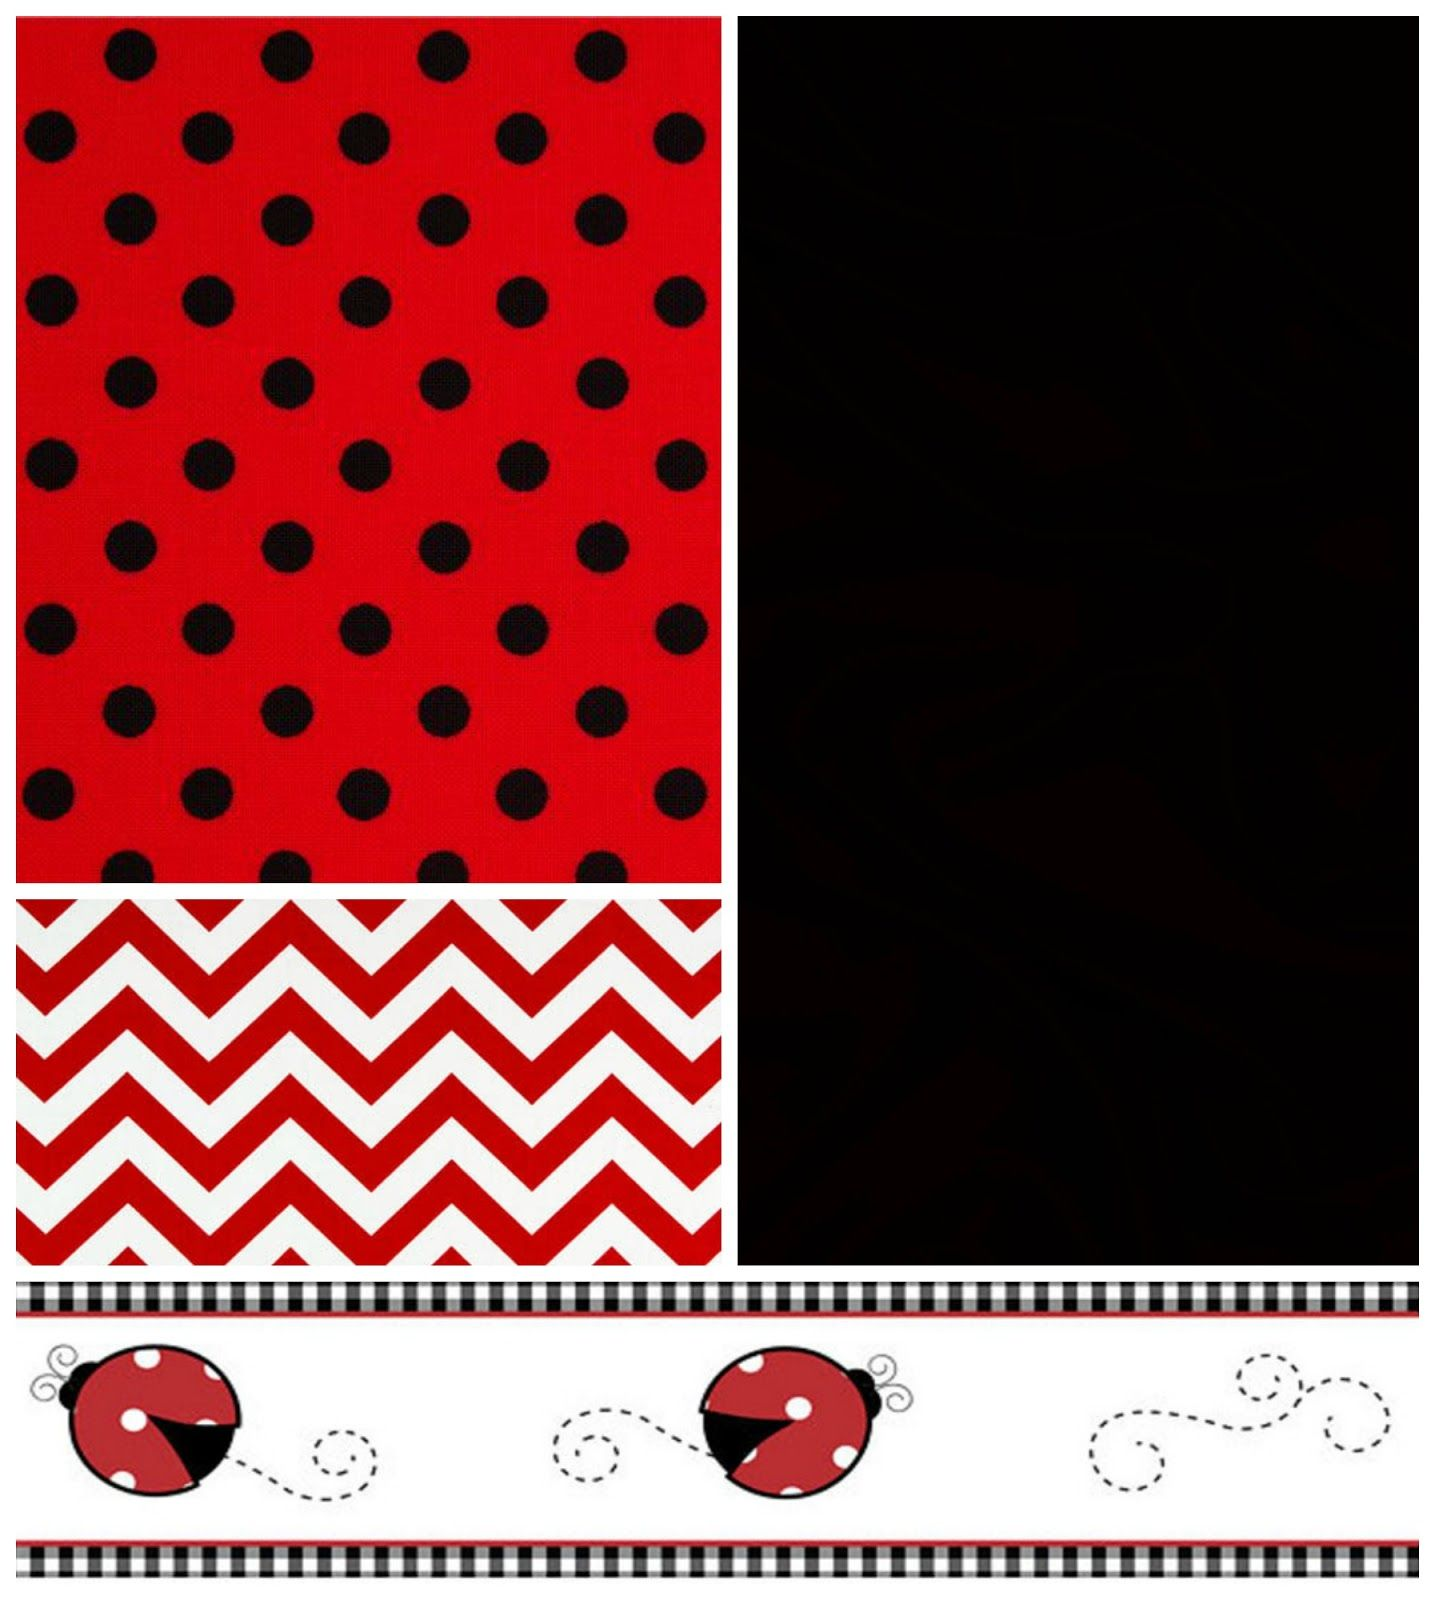 ladybug birthday invitation template plus learn how to make ladybug birthday invitation template plus learn how to make your own